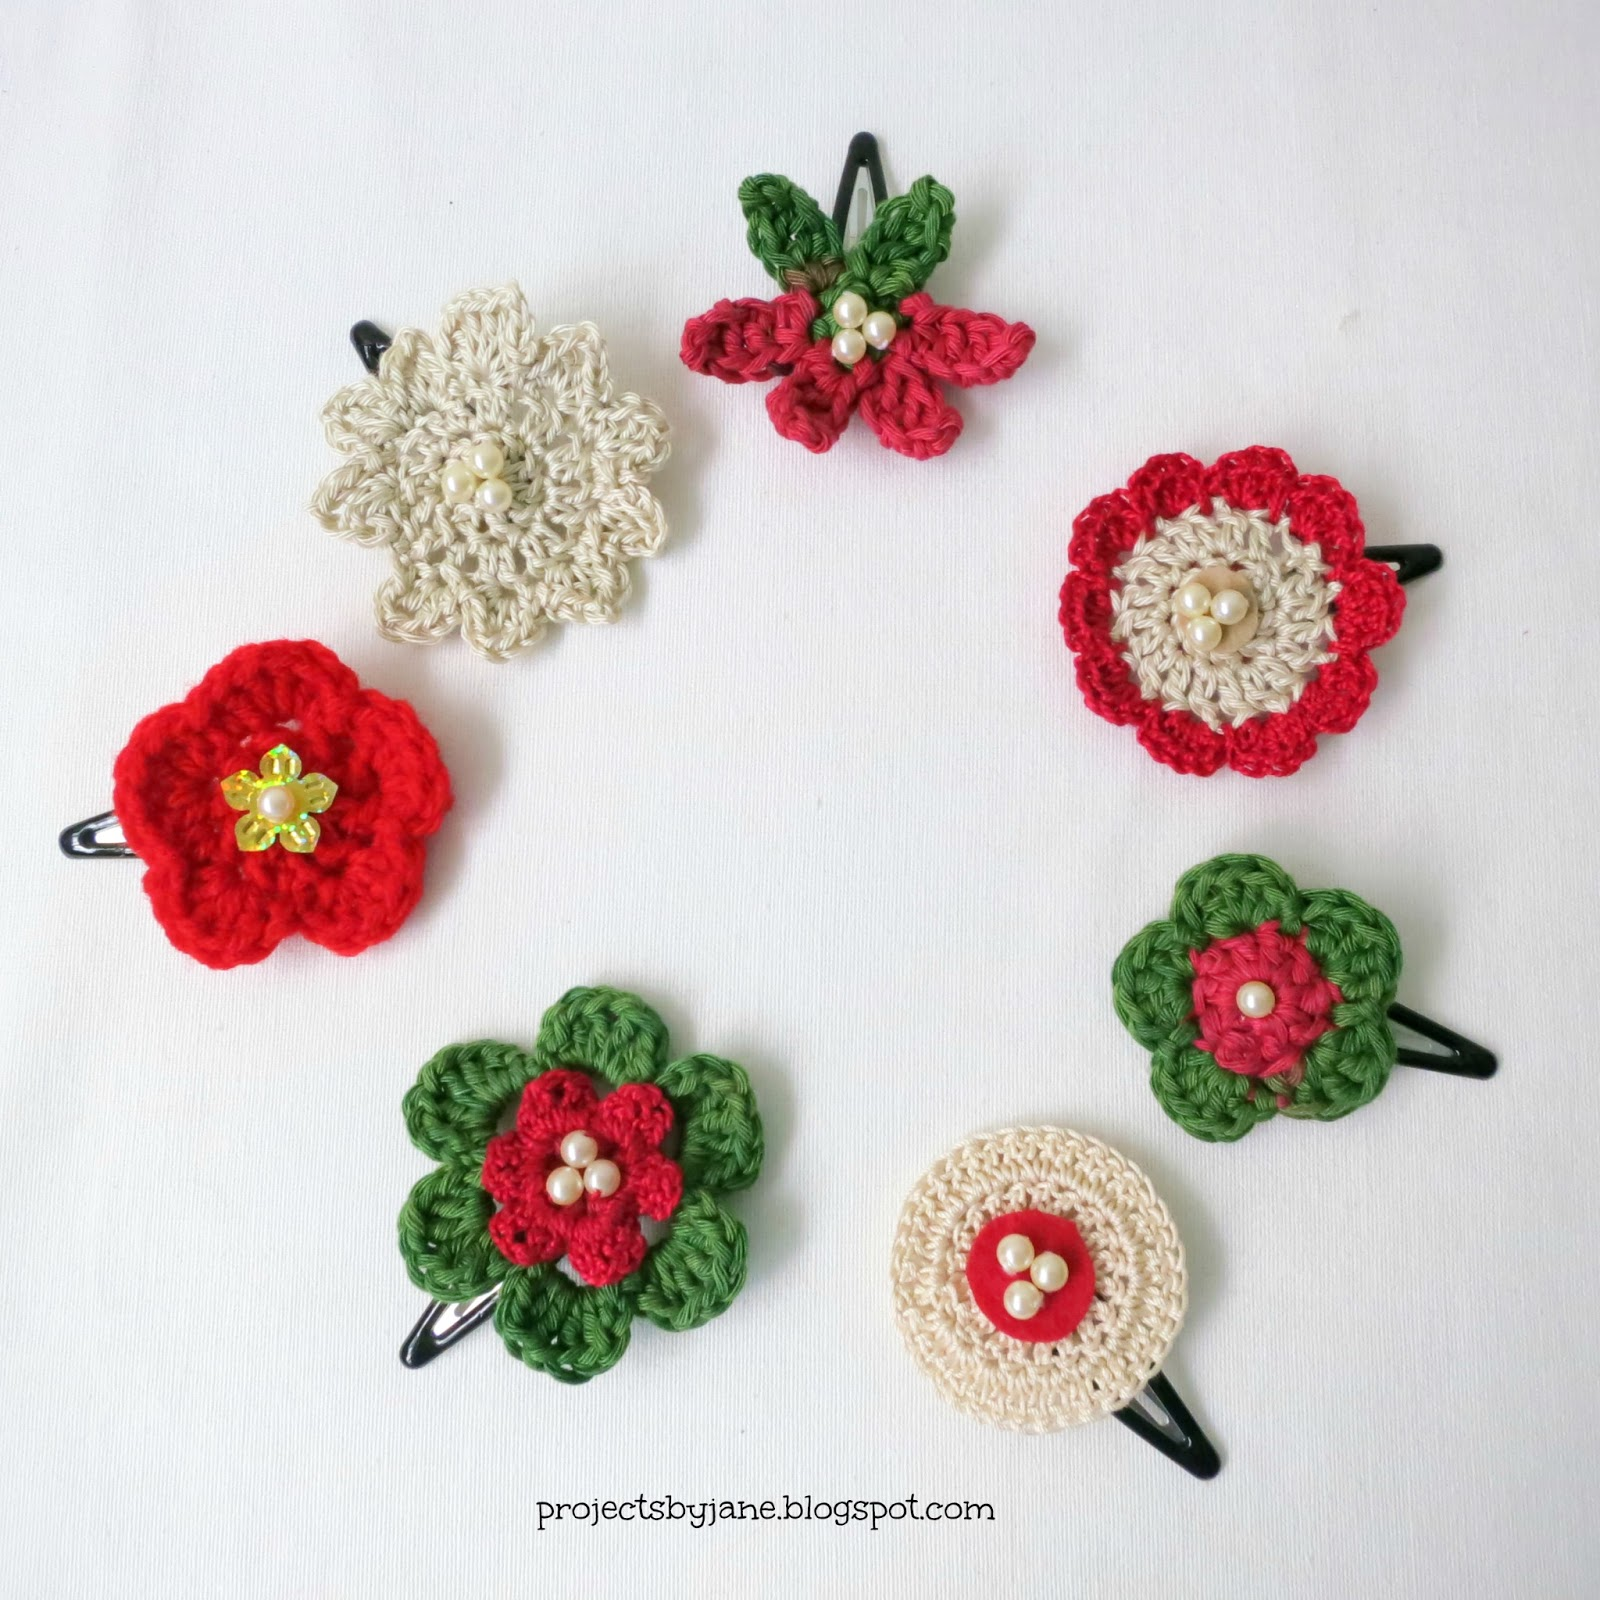 in my haste to make these crochet hair flowers i